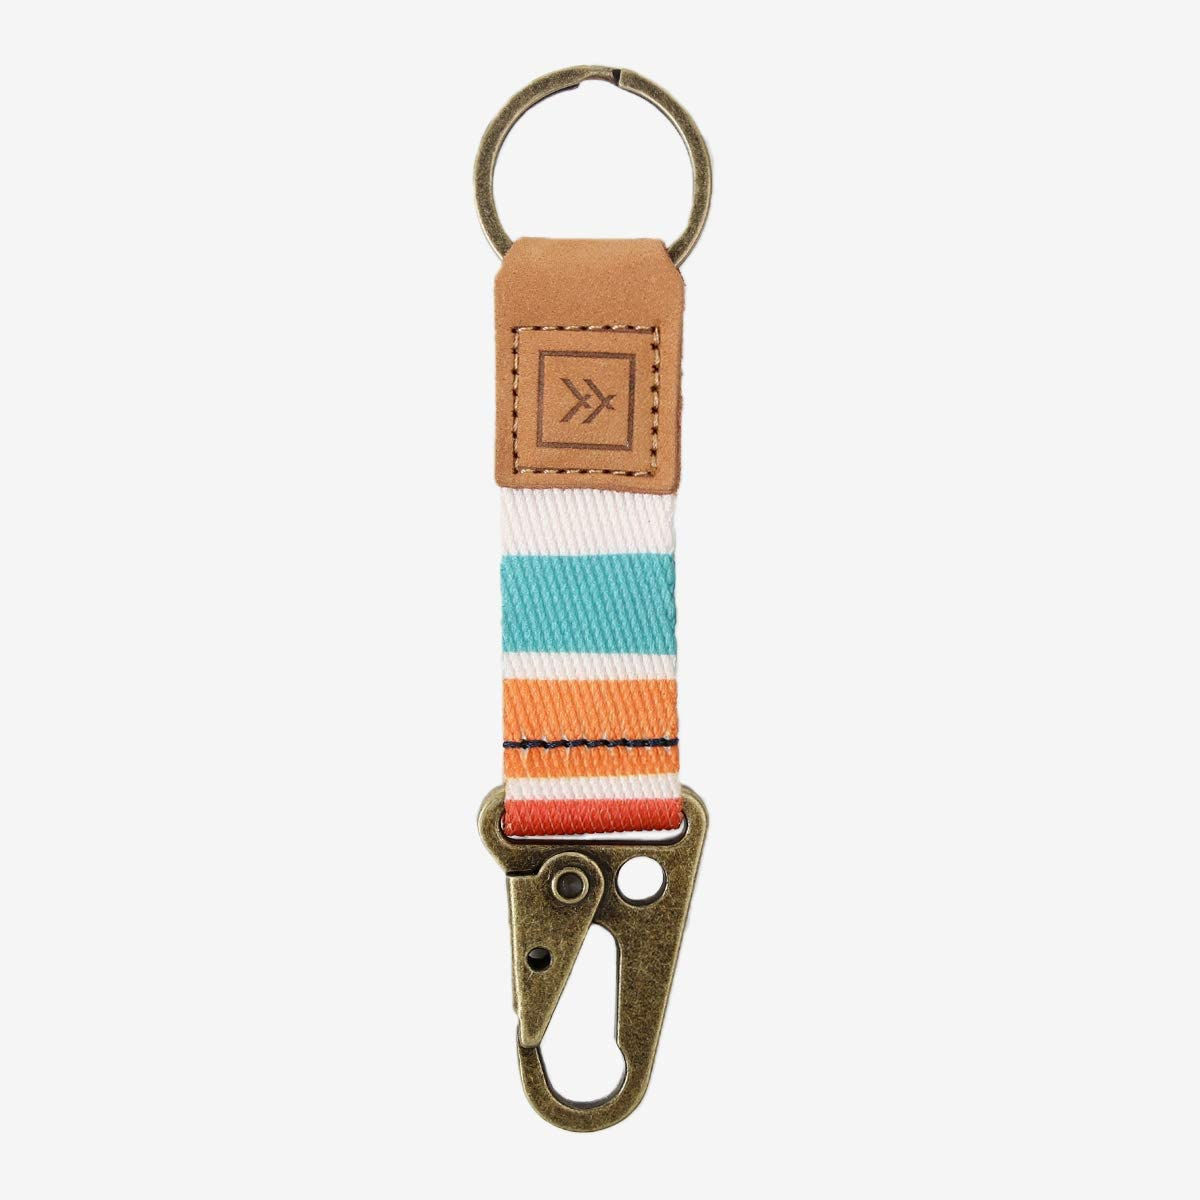 Thread Wallets - Keychain 2021 Clip Chain Key Holder Large discharge sale